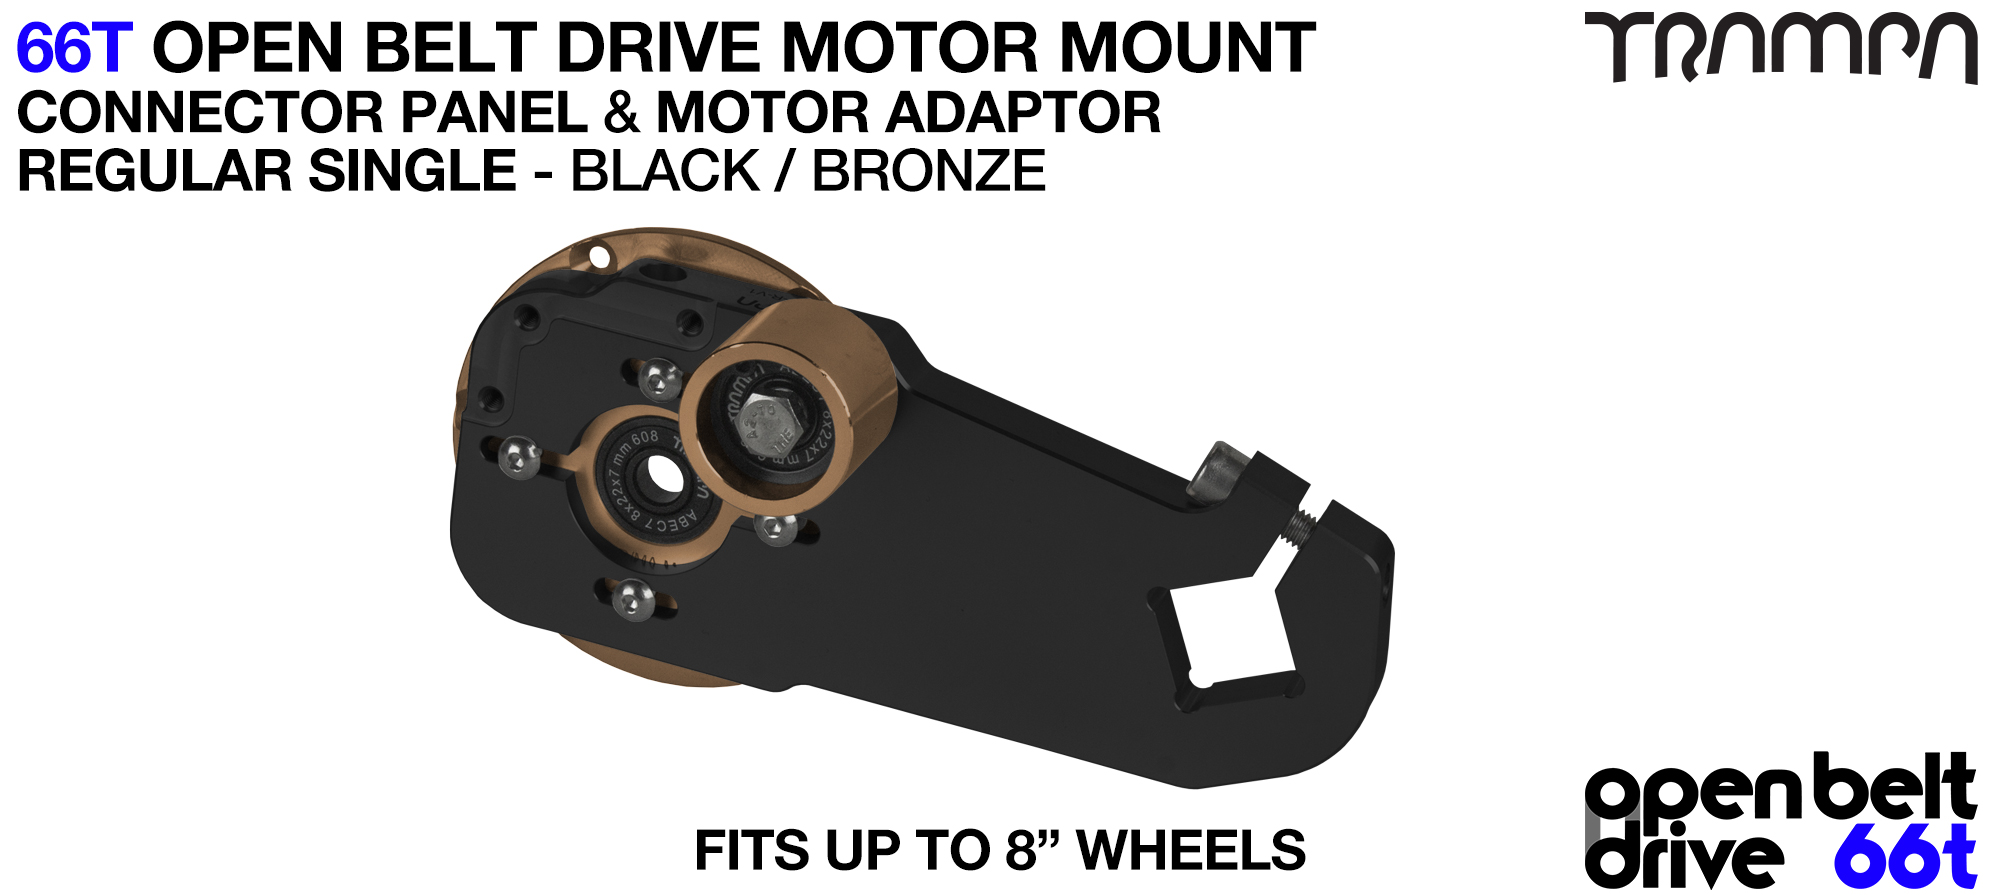 66T OPEN BELT DRIVE Motor Mount & Motor Adaptor - SINGLE BRONZE